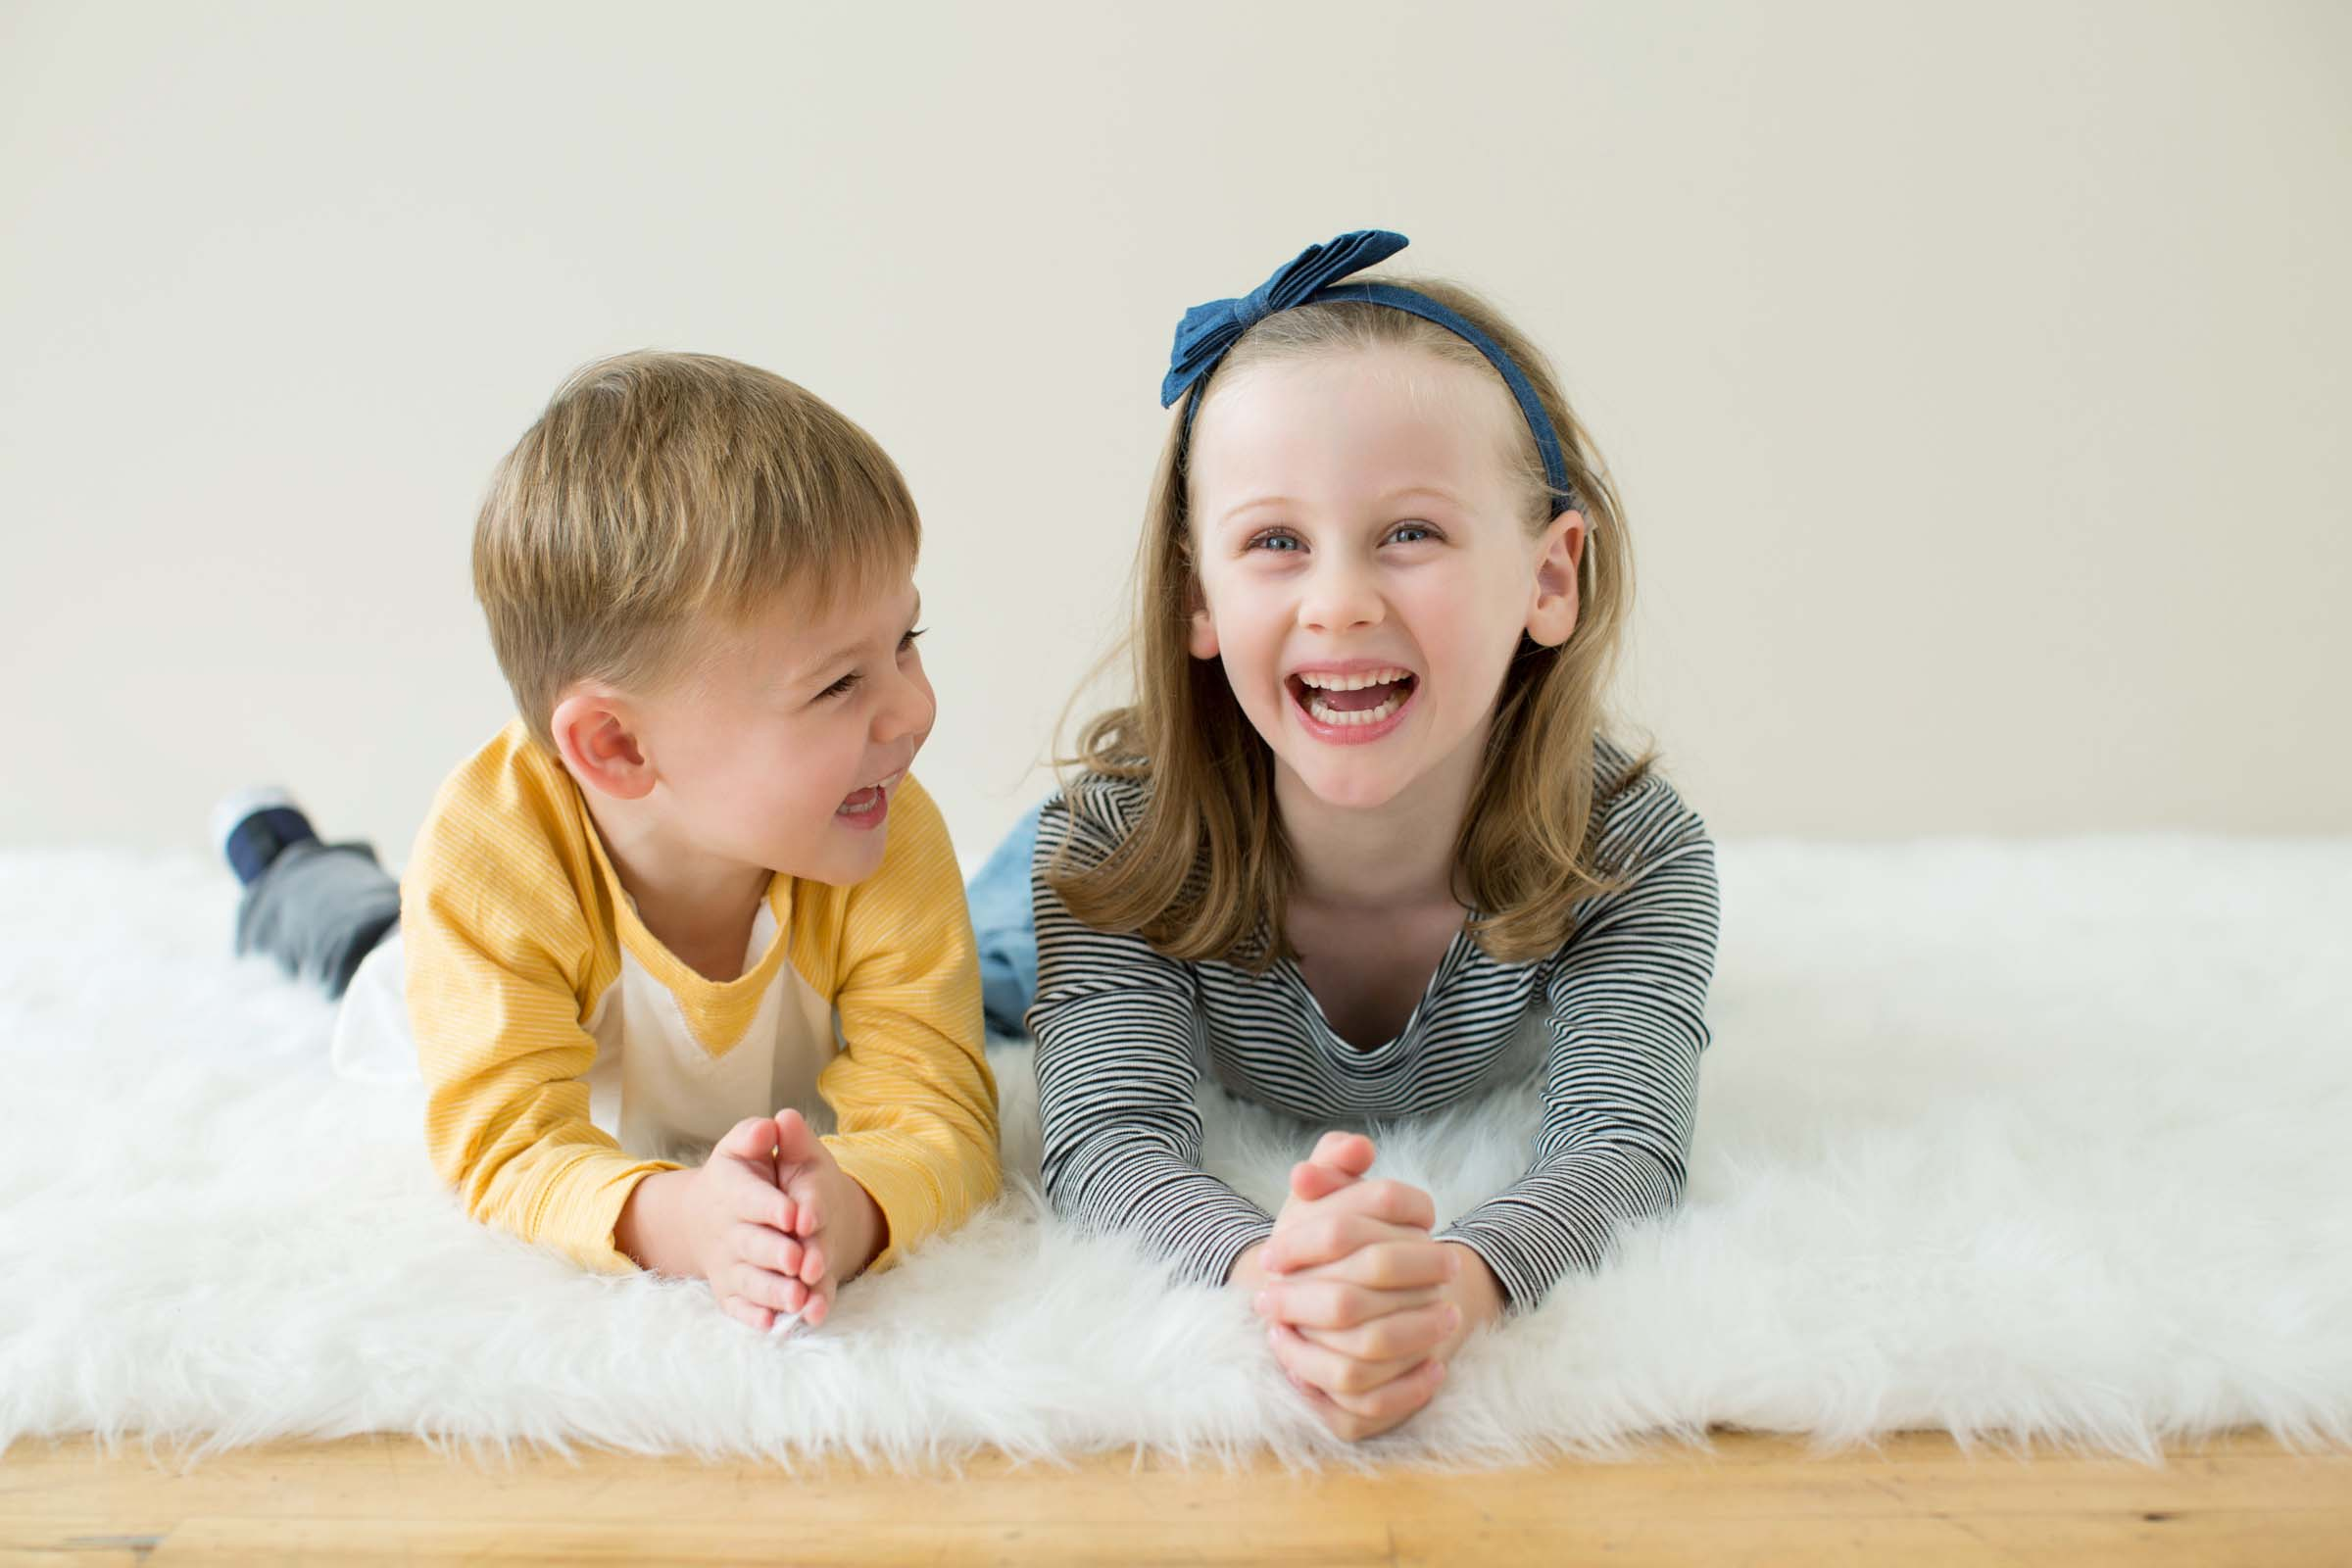 happiness-shared-brother-and-sister-1.jpg